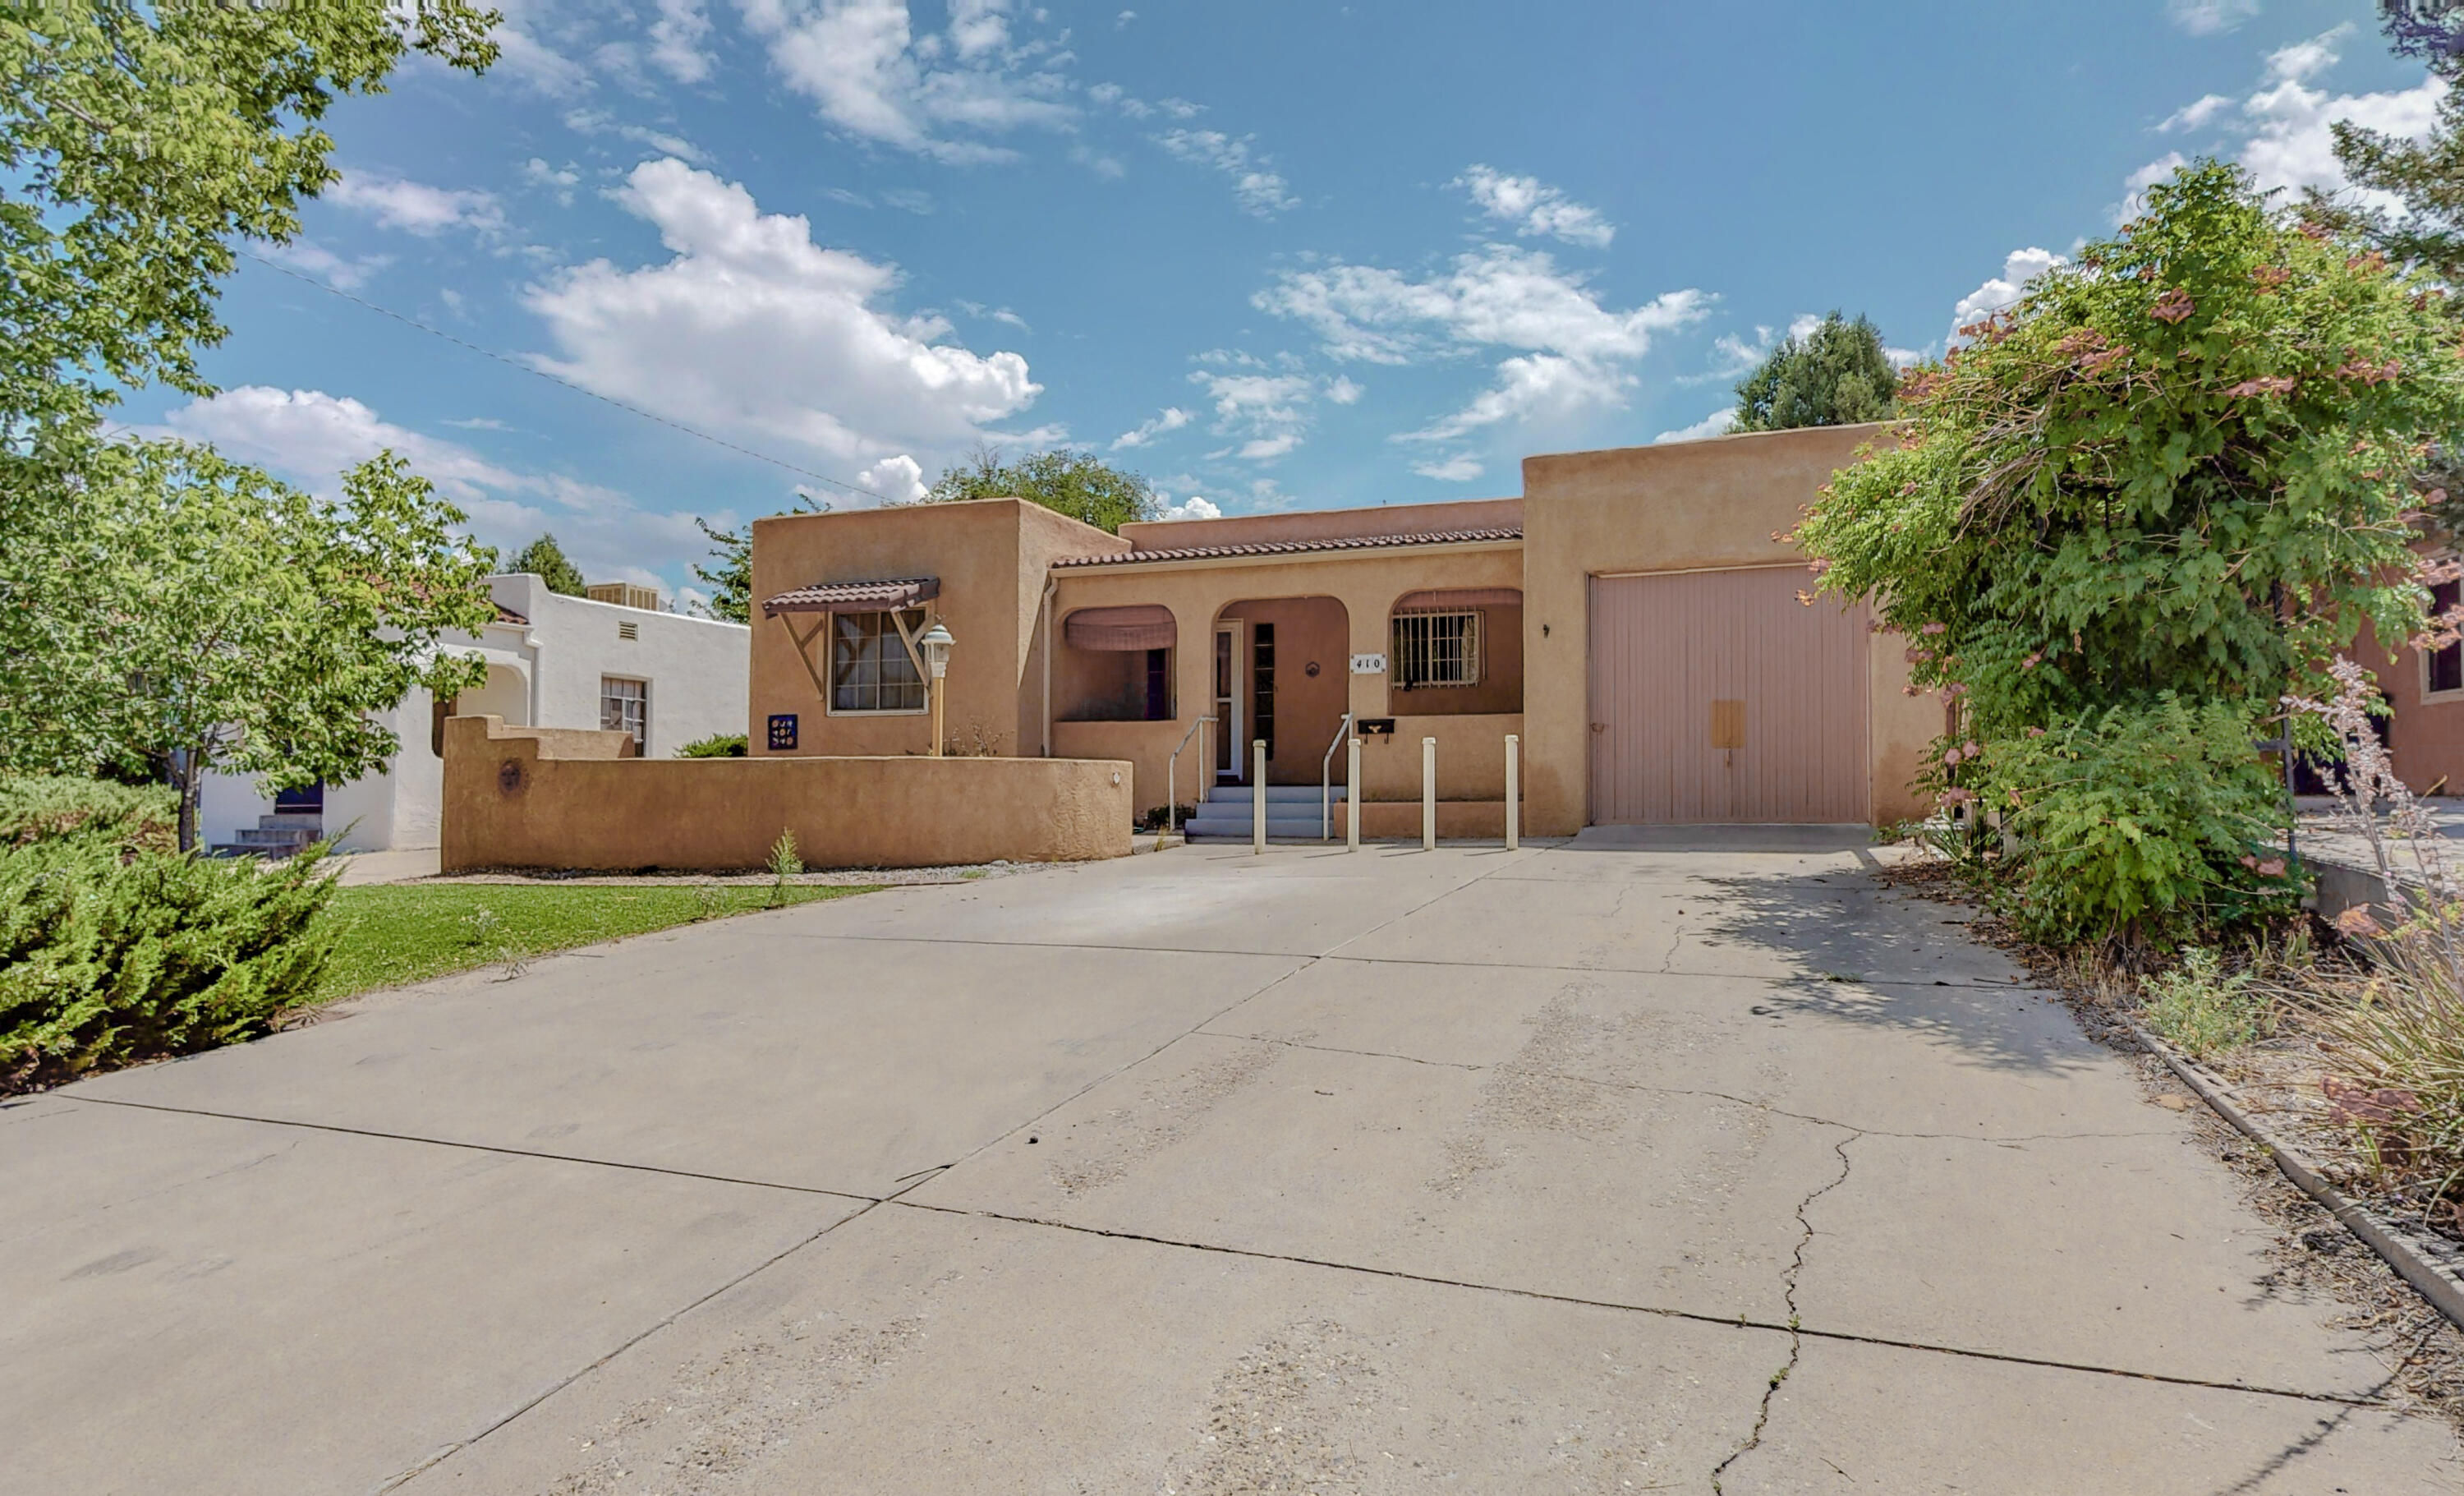 Immaculate Home in the University Area just minutes away from UNM, CNM restaurants and entertainment.  Featuring a 4 Car Garage set up that offers many uses and opportunities - home gym, workshop, storage, extra vehicle space, etc. 3 car garage is approx. 900/sf is heated includes a 1/2 bath and 220 electrical.  Recent Improvements include new roof 2019, A/C Replaced 2020, Refinished original Oak Hardwood floors. Floor plan features 2 separate living areas one with a wet bar for entertaining and flexibility.  Master Suite offers spacious 6x8 walk-in closet and dual vanity sinks.  Private covered patio accesses off family room and dining area.   Storage Room, Closet Space and Garage space make this a winning combo in the UNM area.  Call today to schedule your showing.